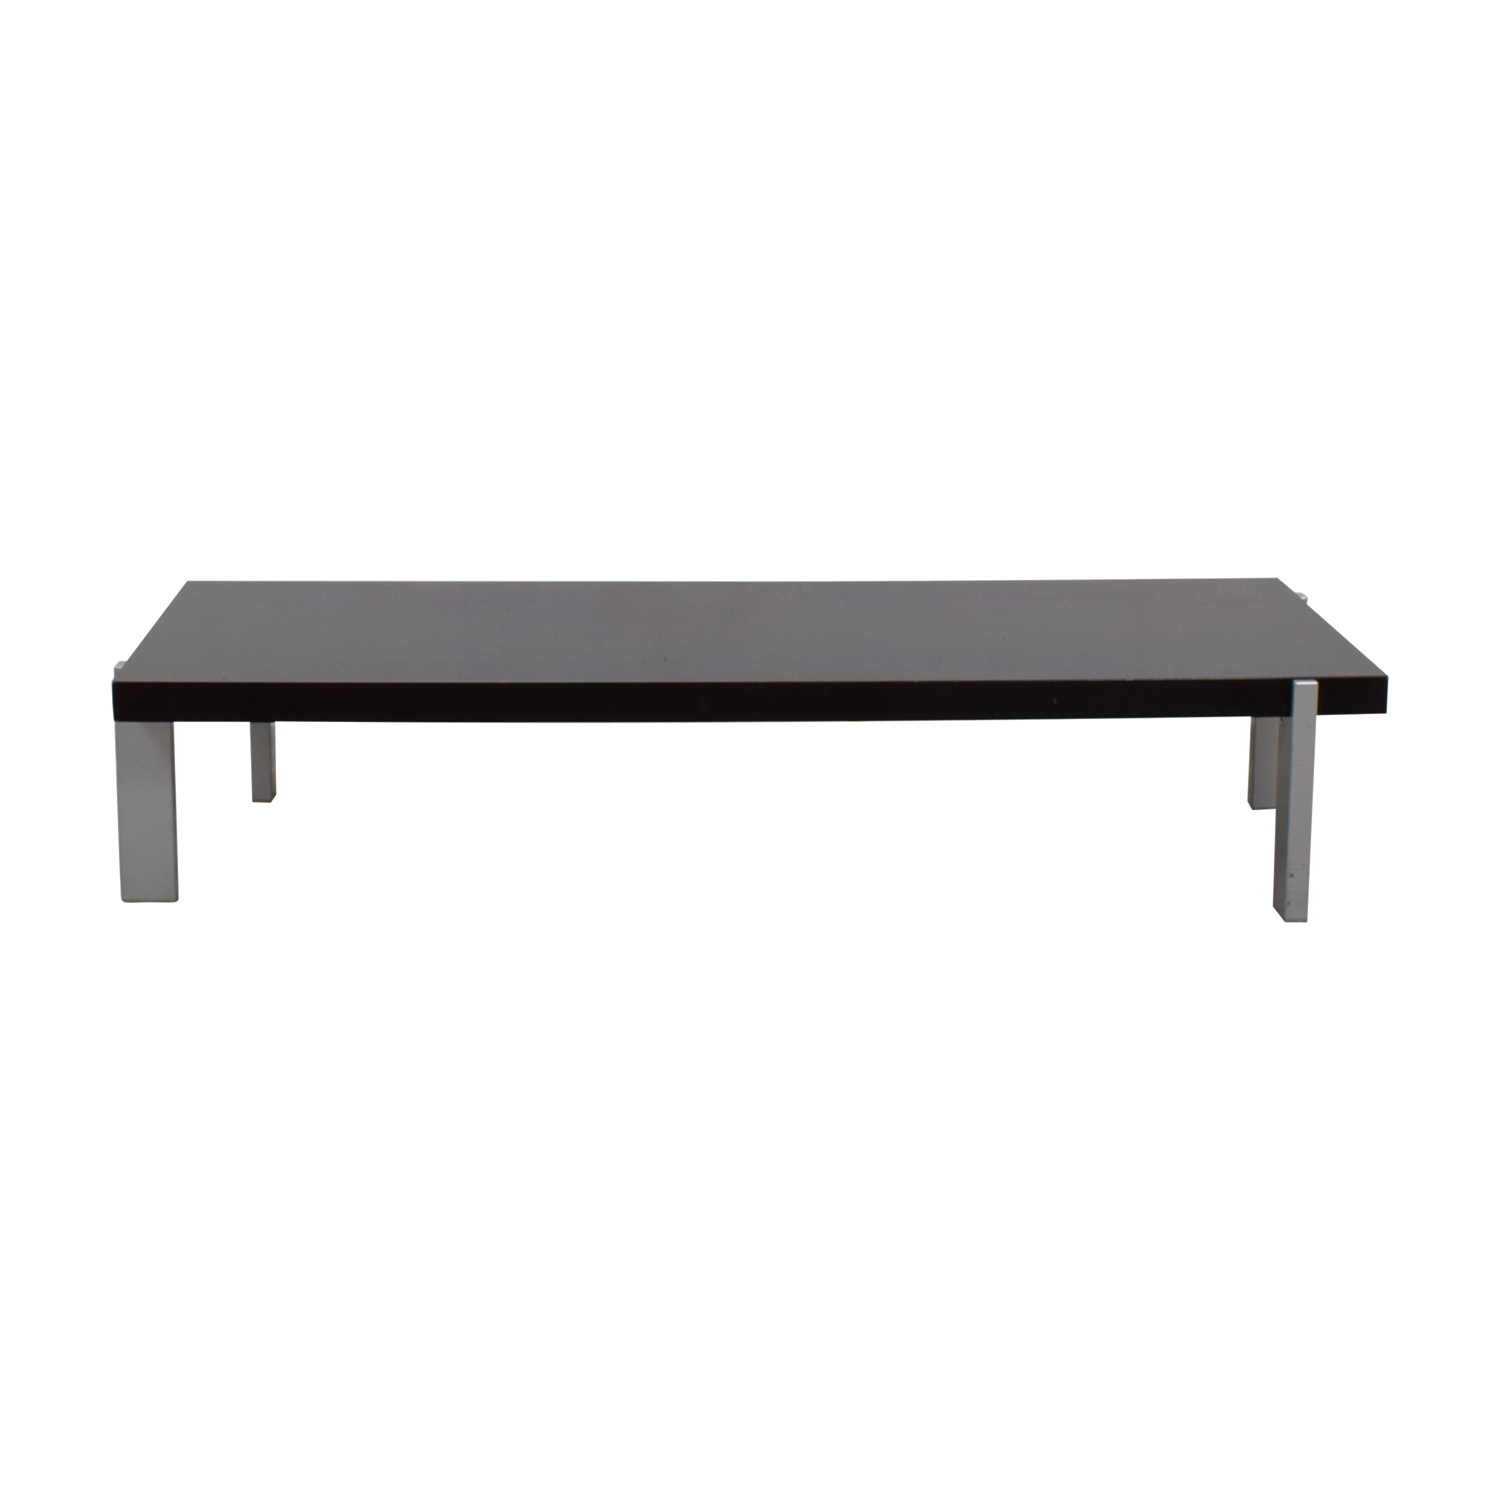 off coffee dimensions custom canadian table modern tables hand second